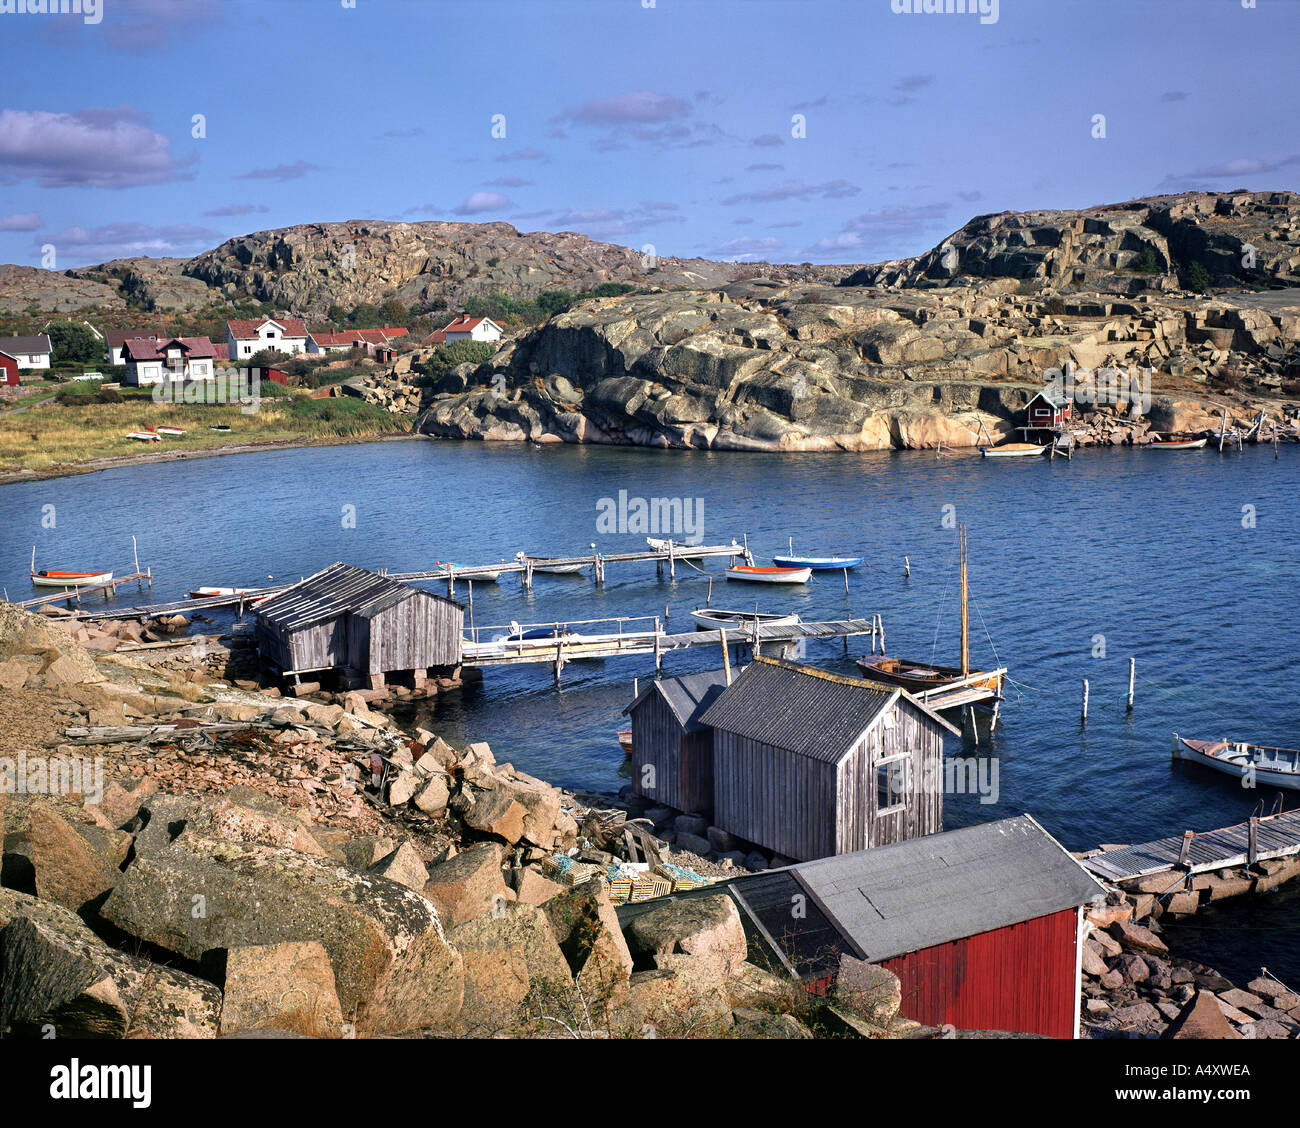 SE - BOHUSLAEN: Coast near Heestrand on Skaggerack - Stock Image